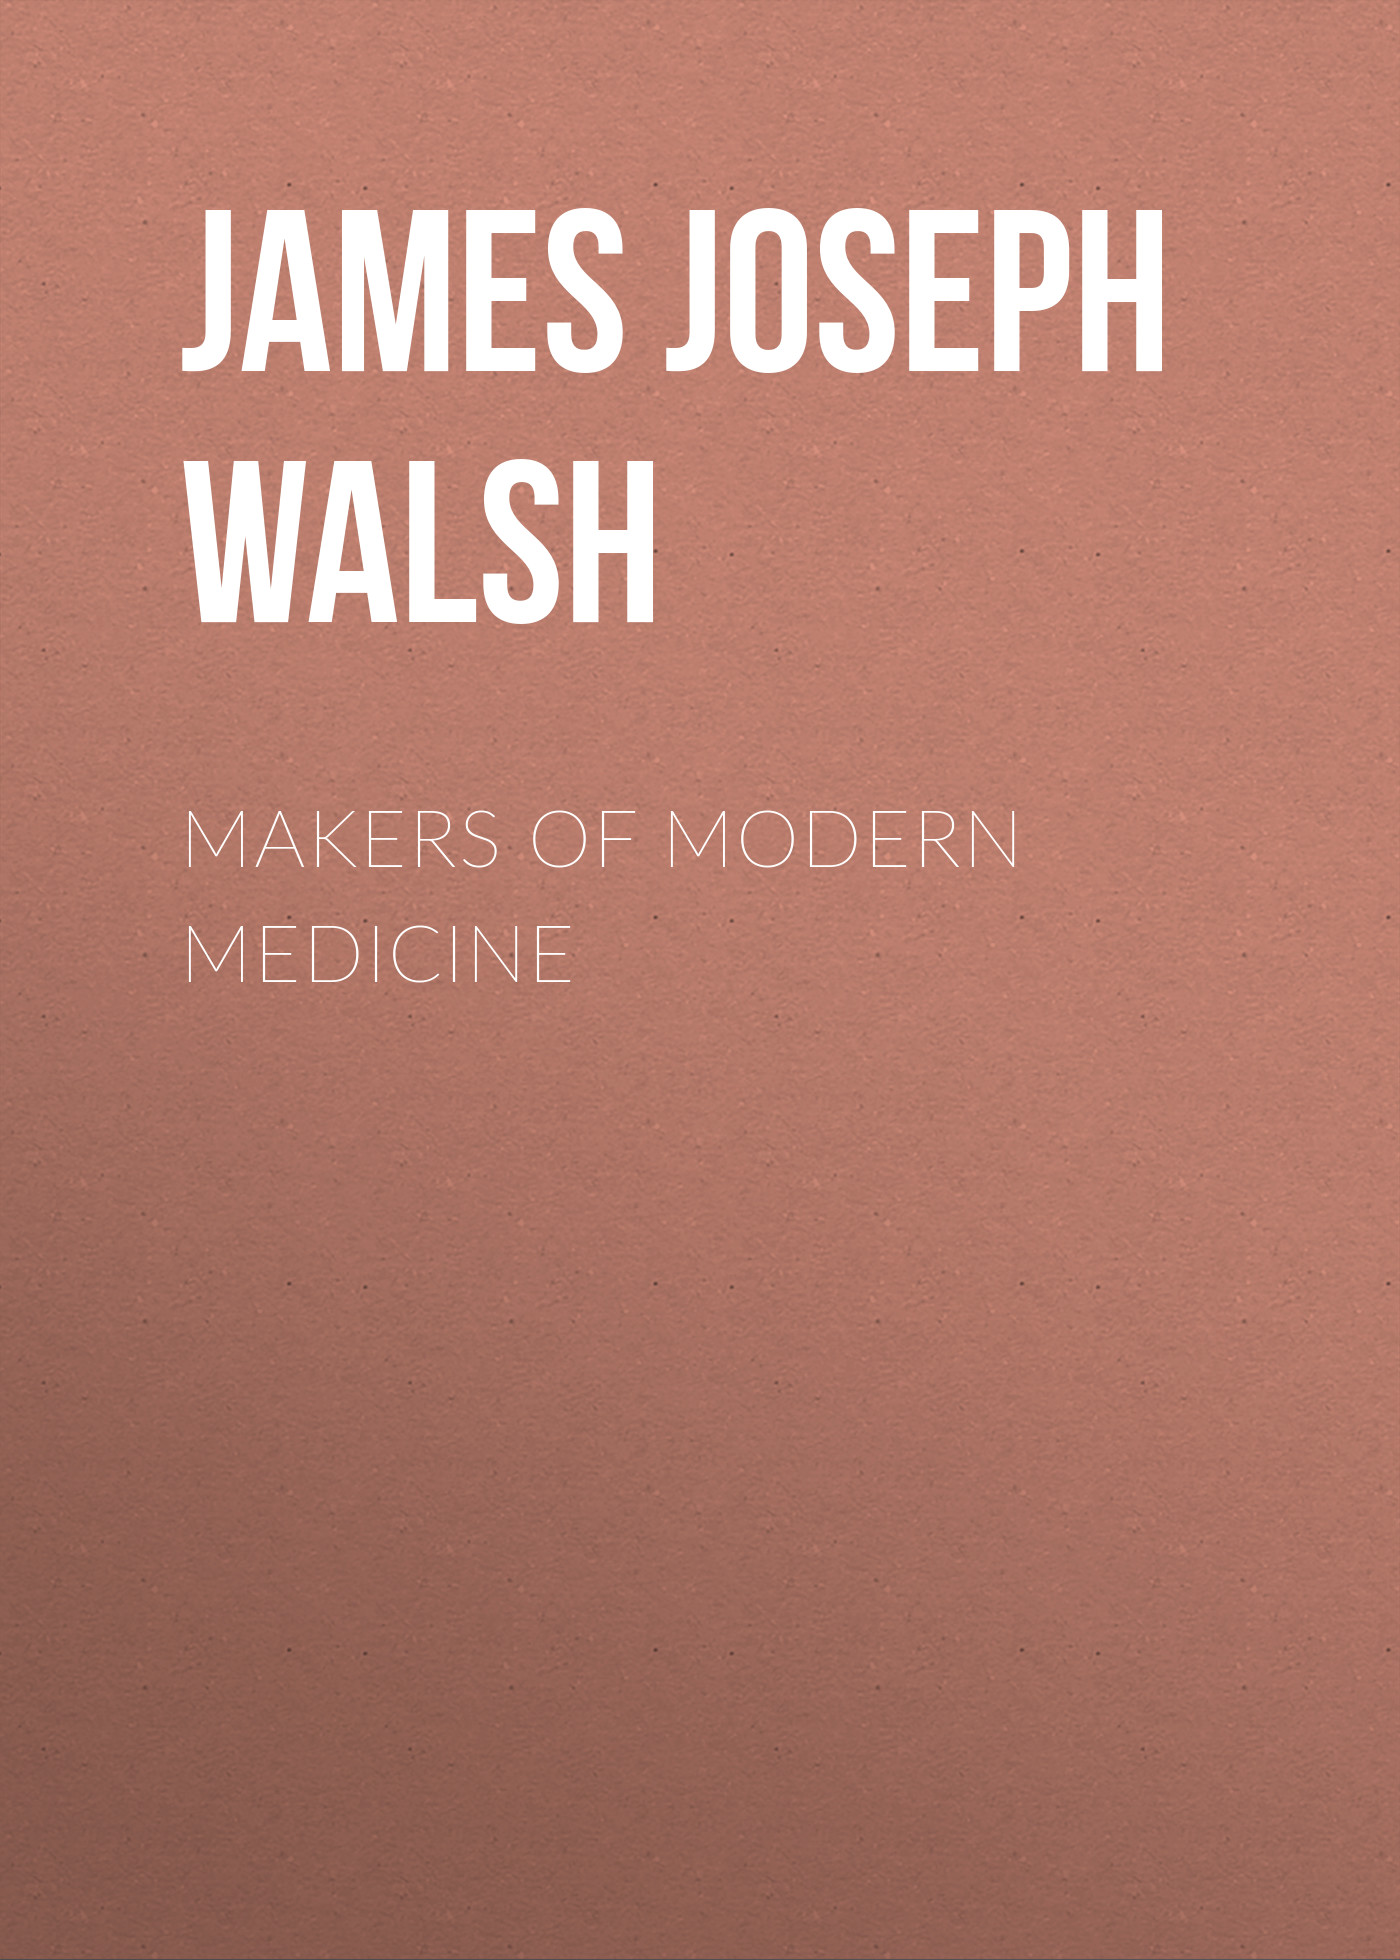 James Joseph Walsh Makers of Modern Medicine dawson william james literary leaders of modern england selected chapters from the makers of modern poetry and the makers of modern prose